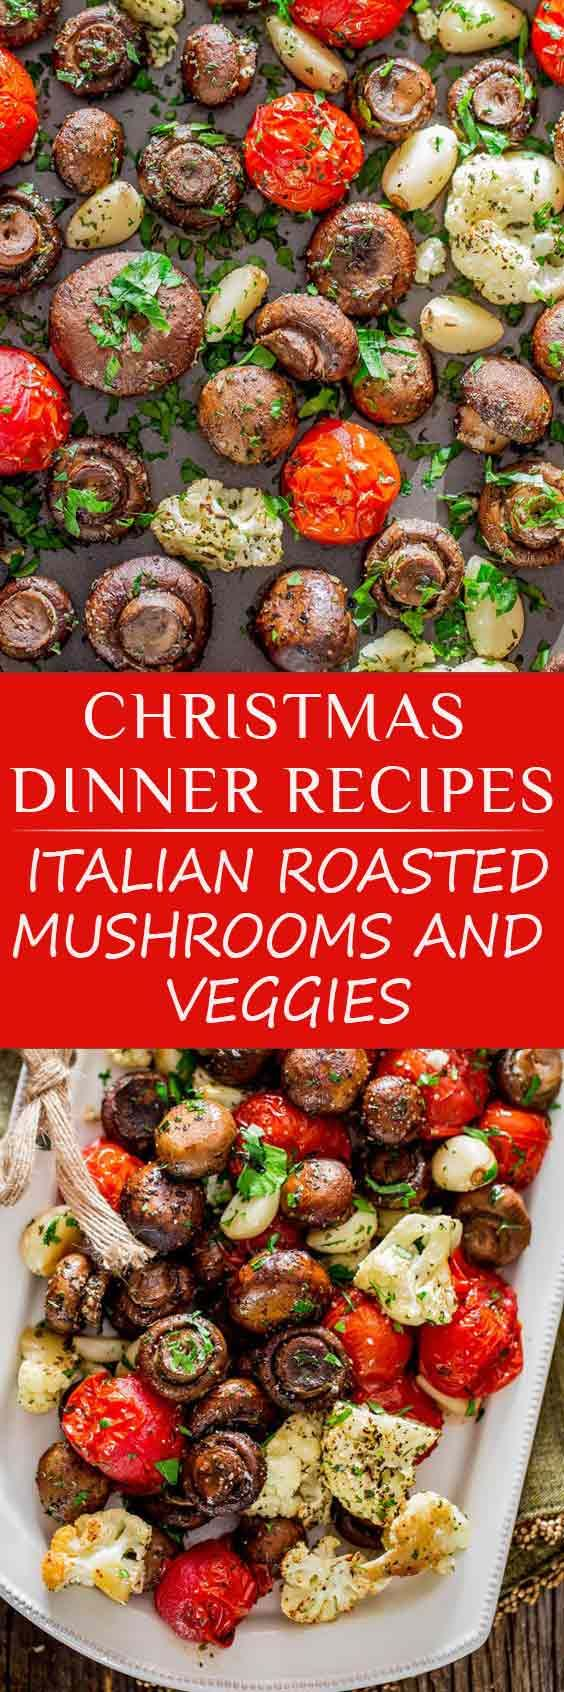 easy christmas dinner recipes that will not drive you away from home - Easy Christmas Dinner Recipes